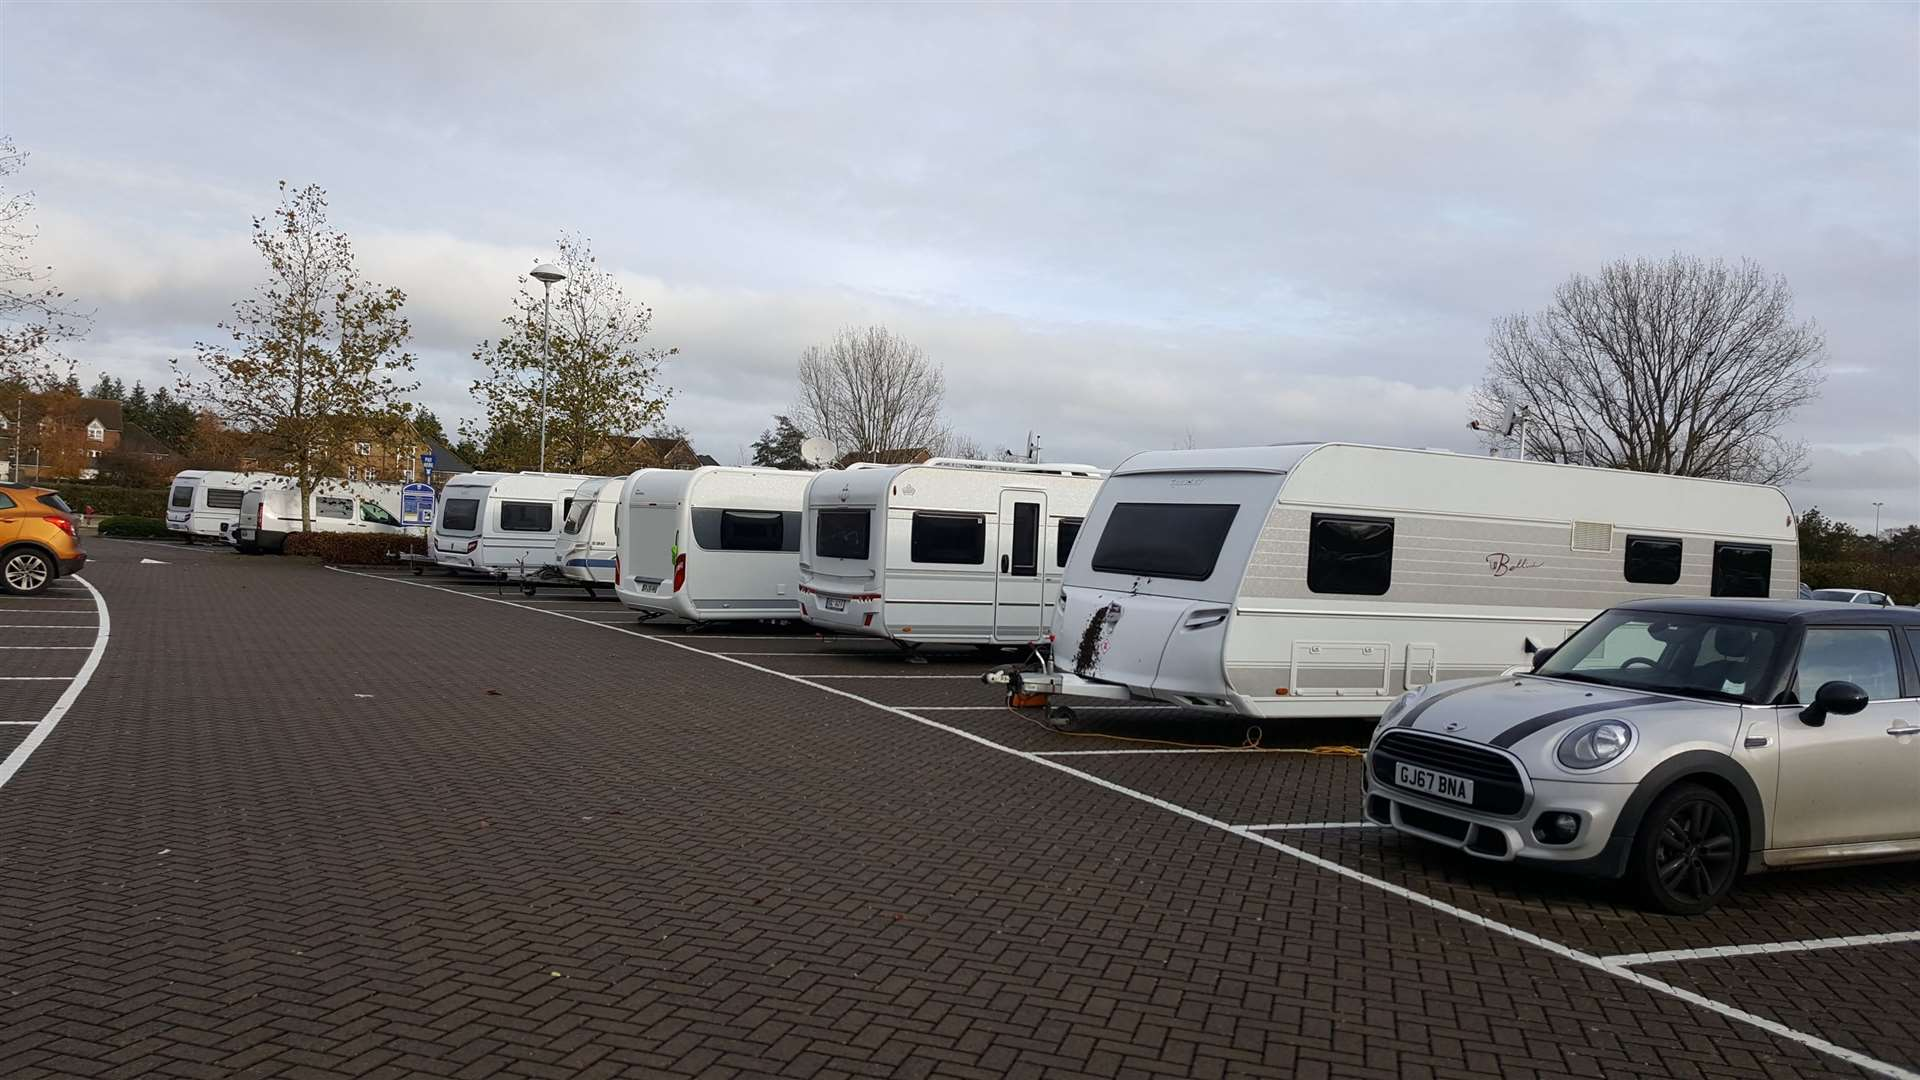 About 12 caravans have pitched up in the car park